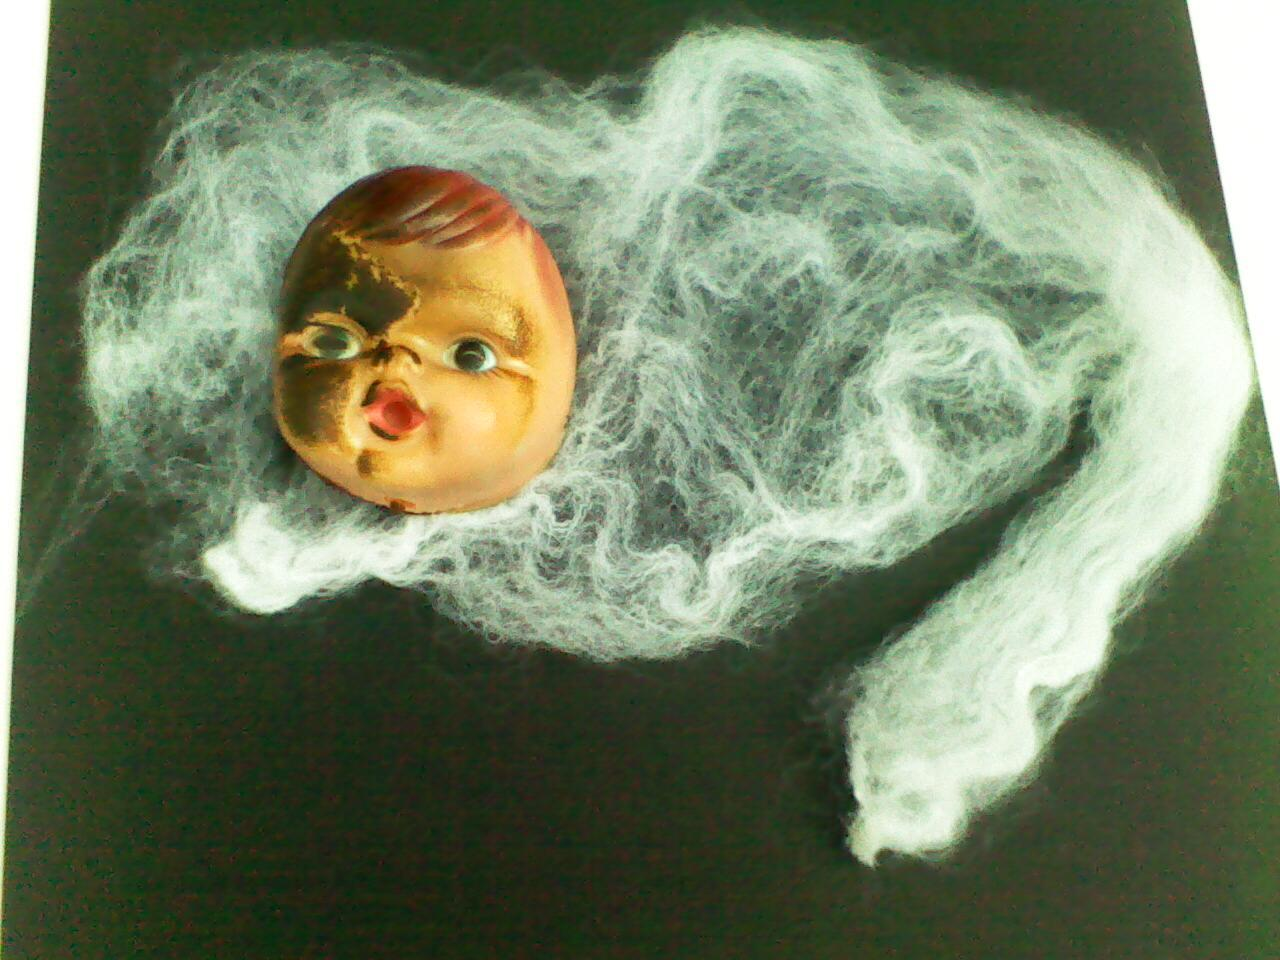 WebHeads! Create Spiderweb-Trapped Doll Heads for Halloween